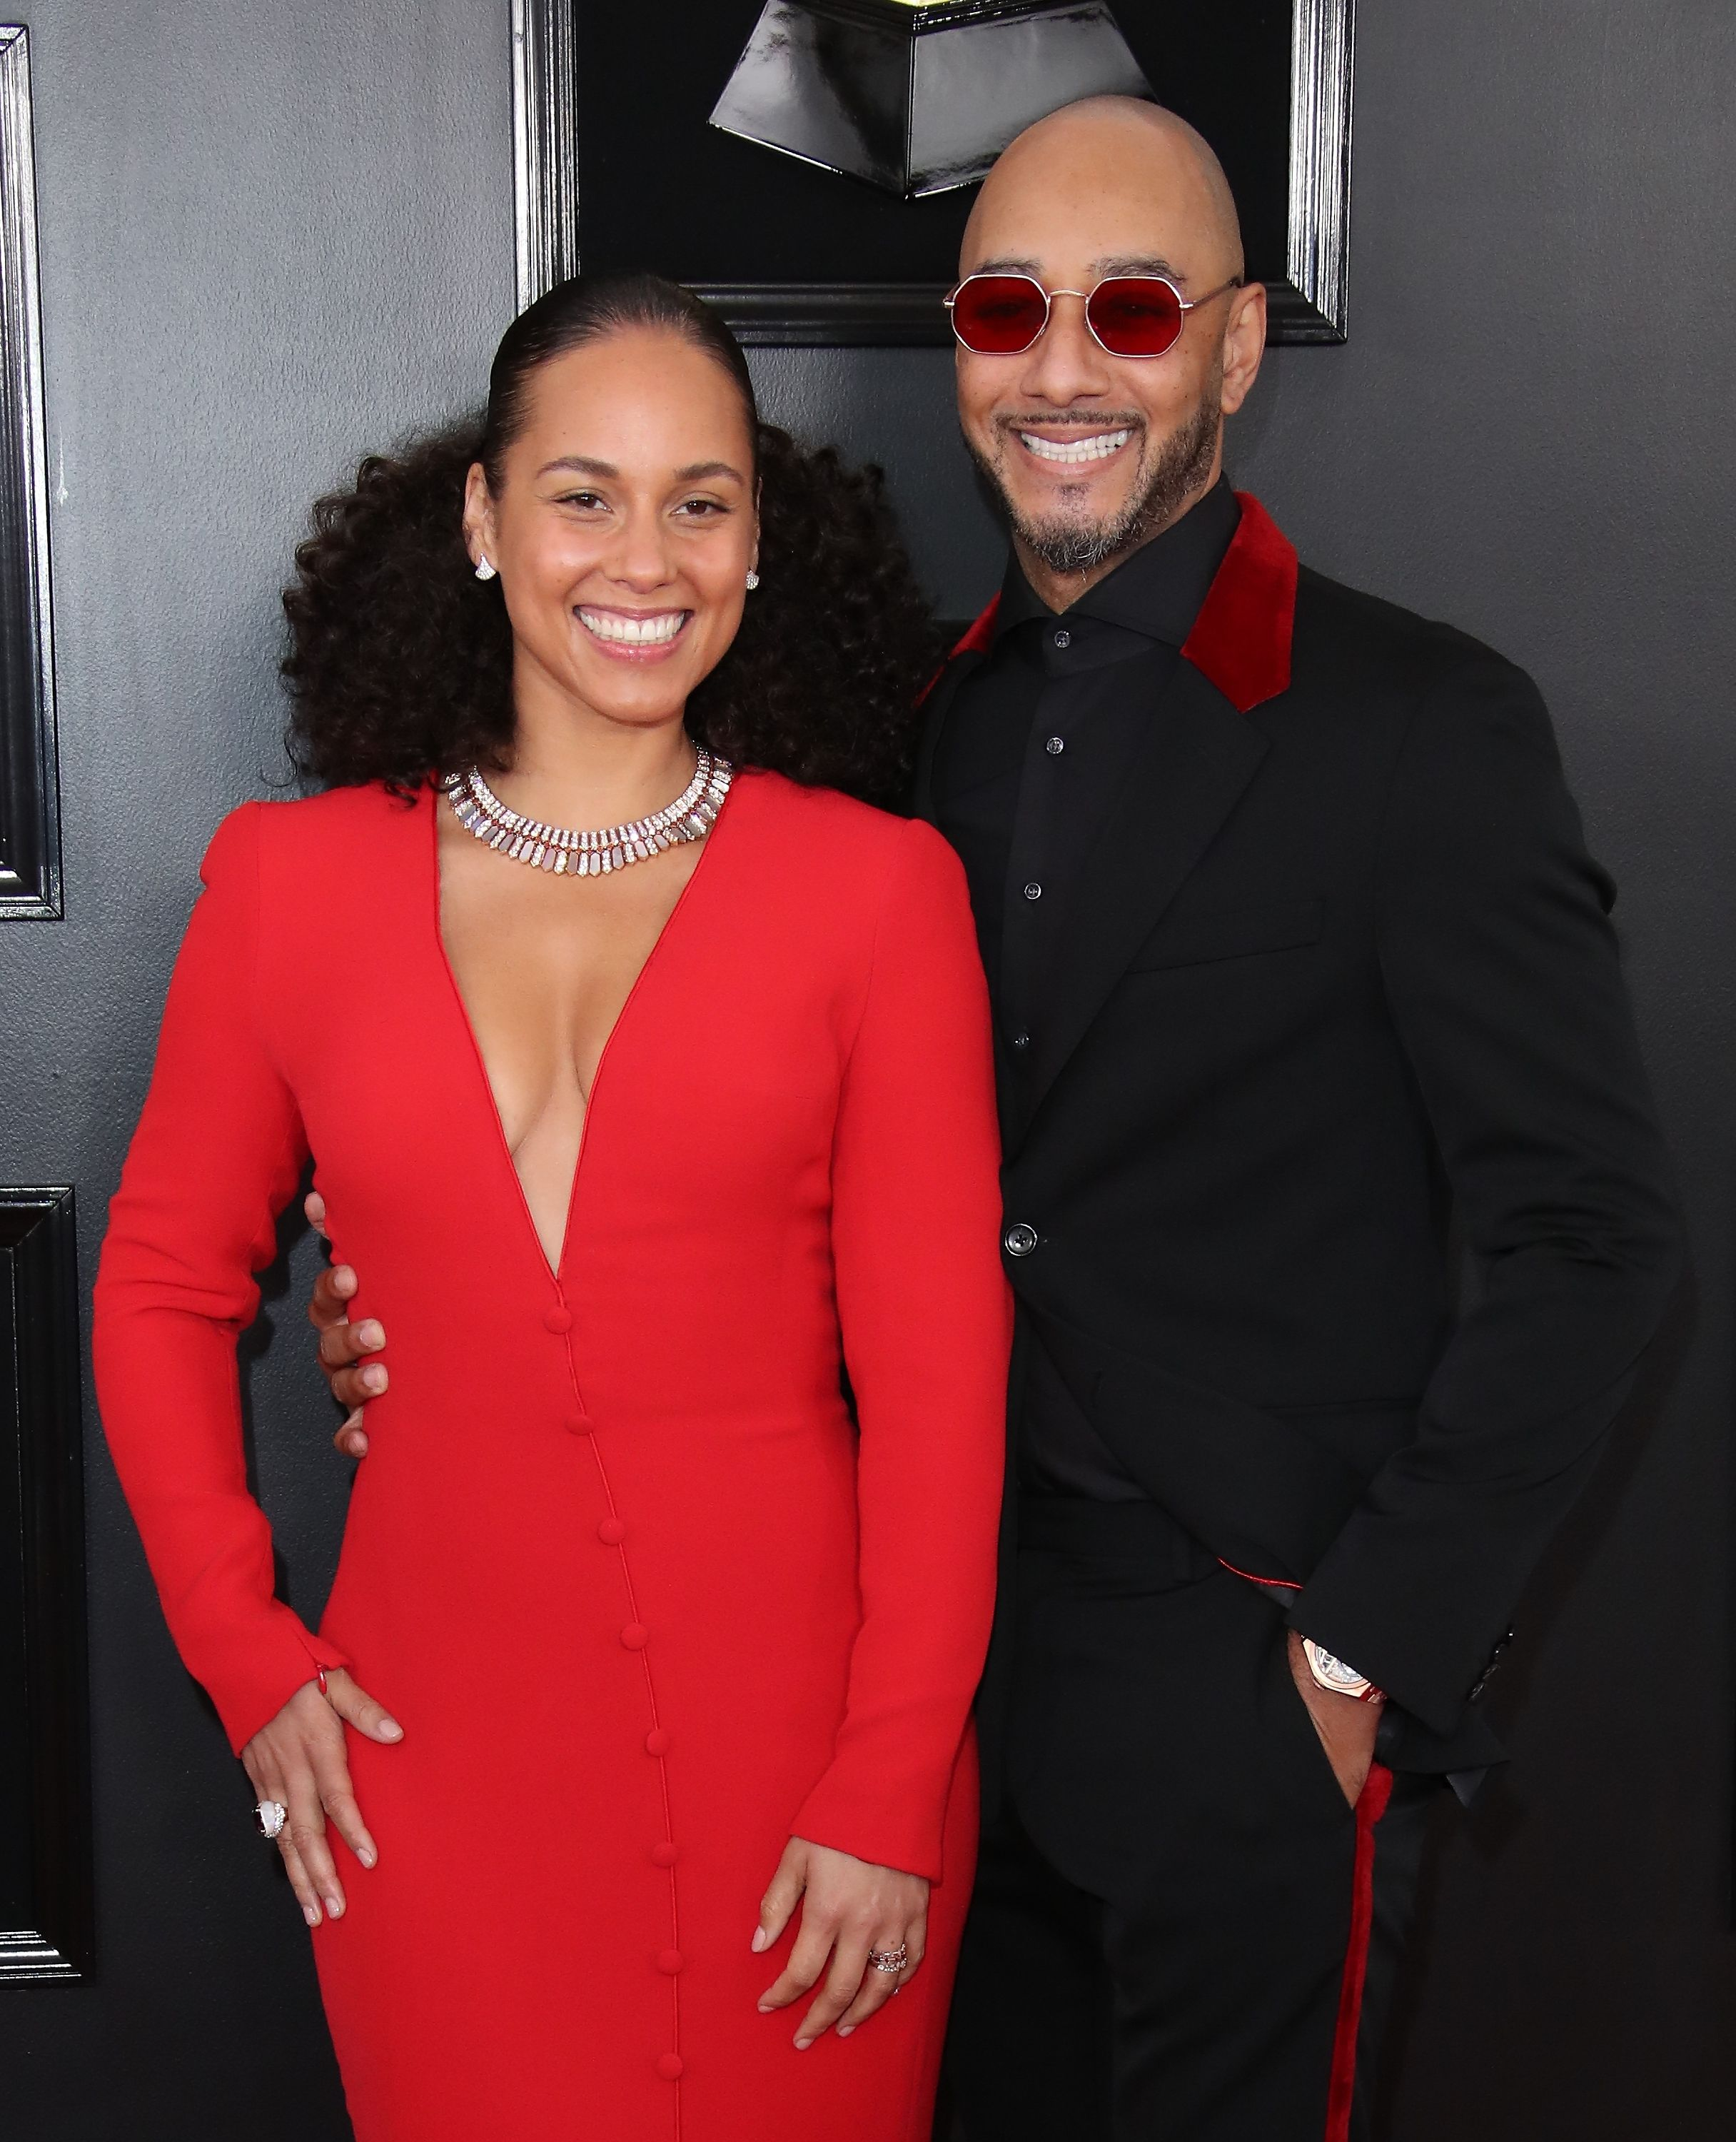 Alicia Keys and Swizz Beatz attend the 61st Annual Grammy Awards at Staples Center in February 2019 in Los Angeles, California. | Photo: Getty Images